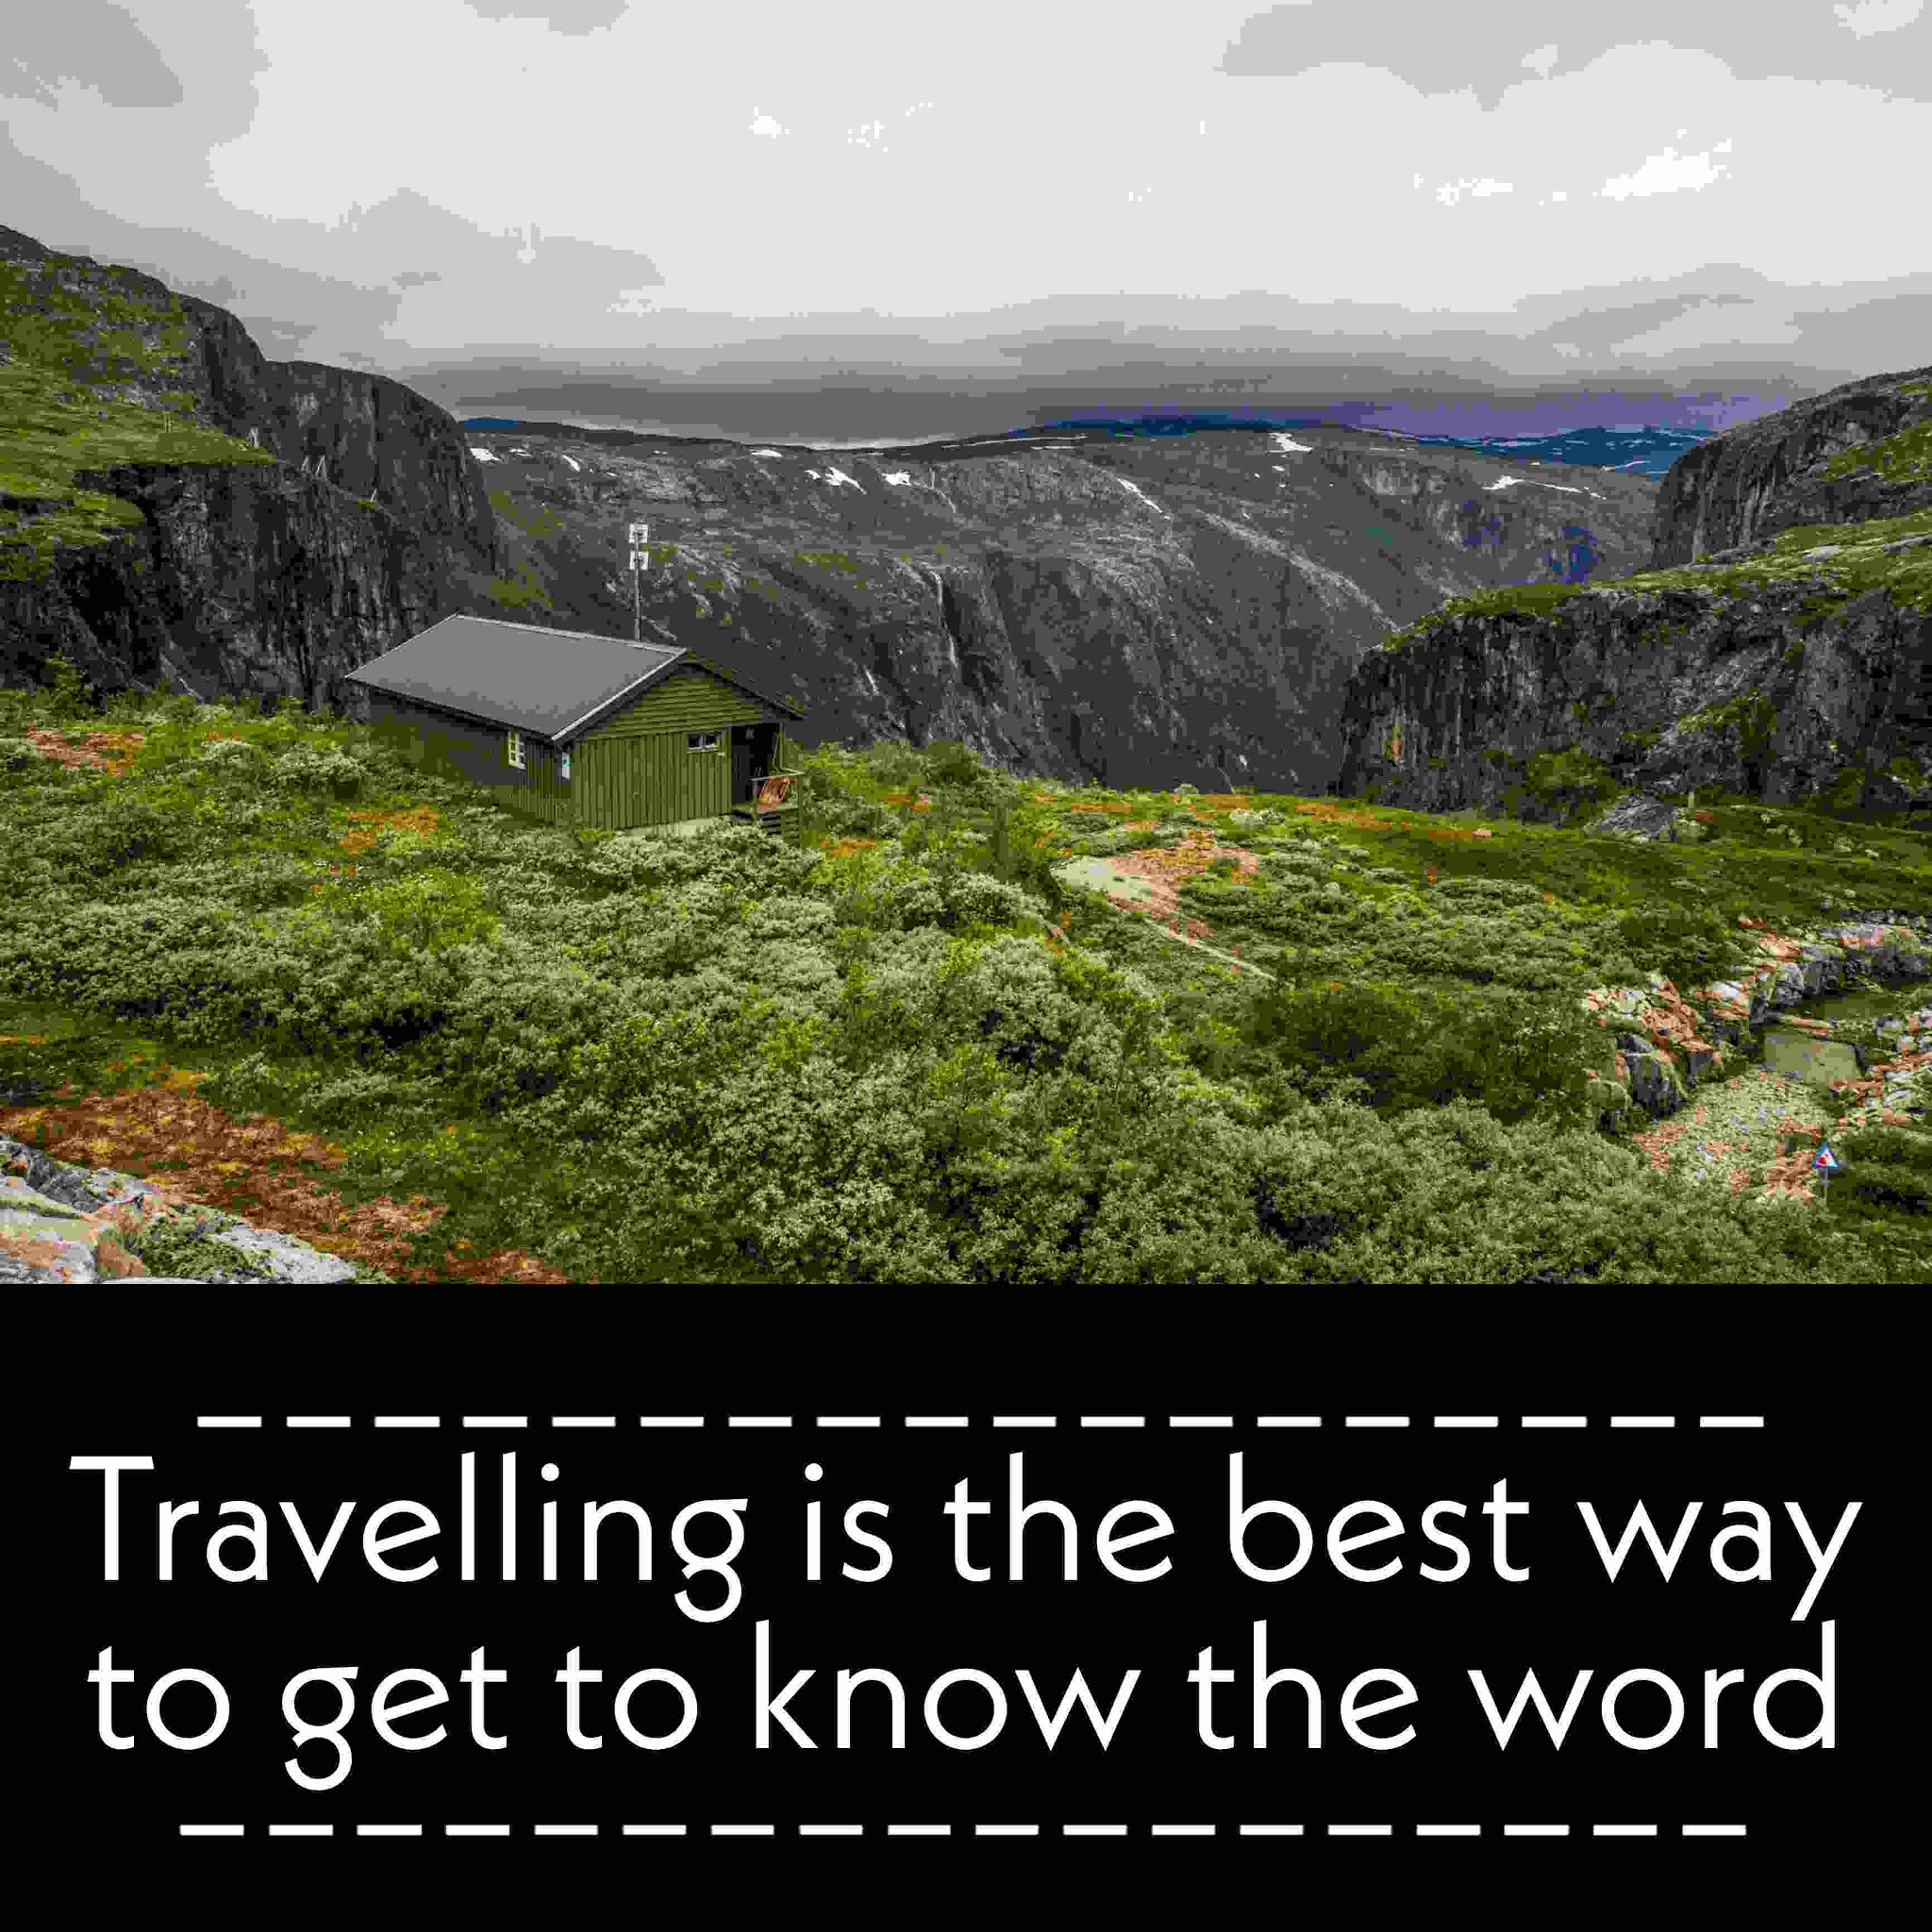 best traveling captions for photography, traveling quotes for mountain ranges